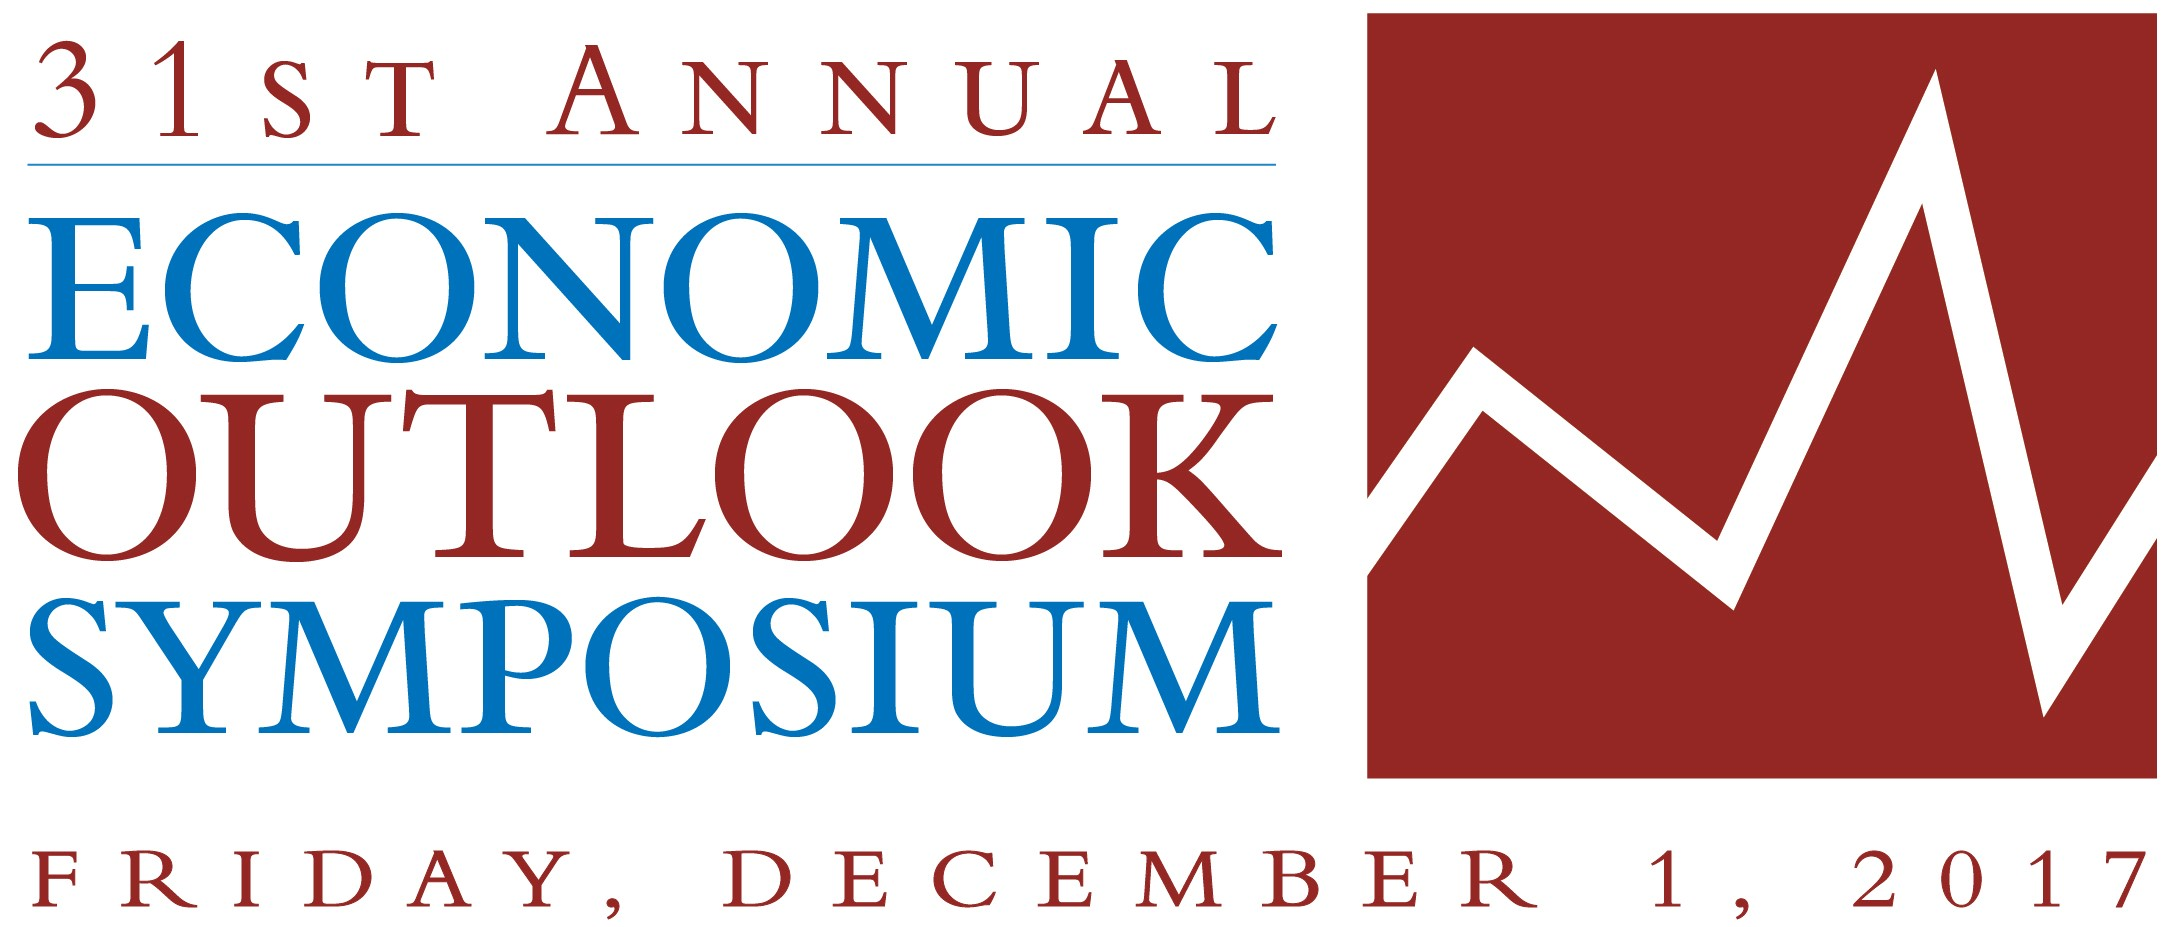 Economic Outlook Symposium 2017